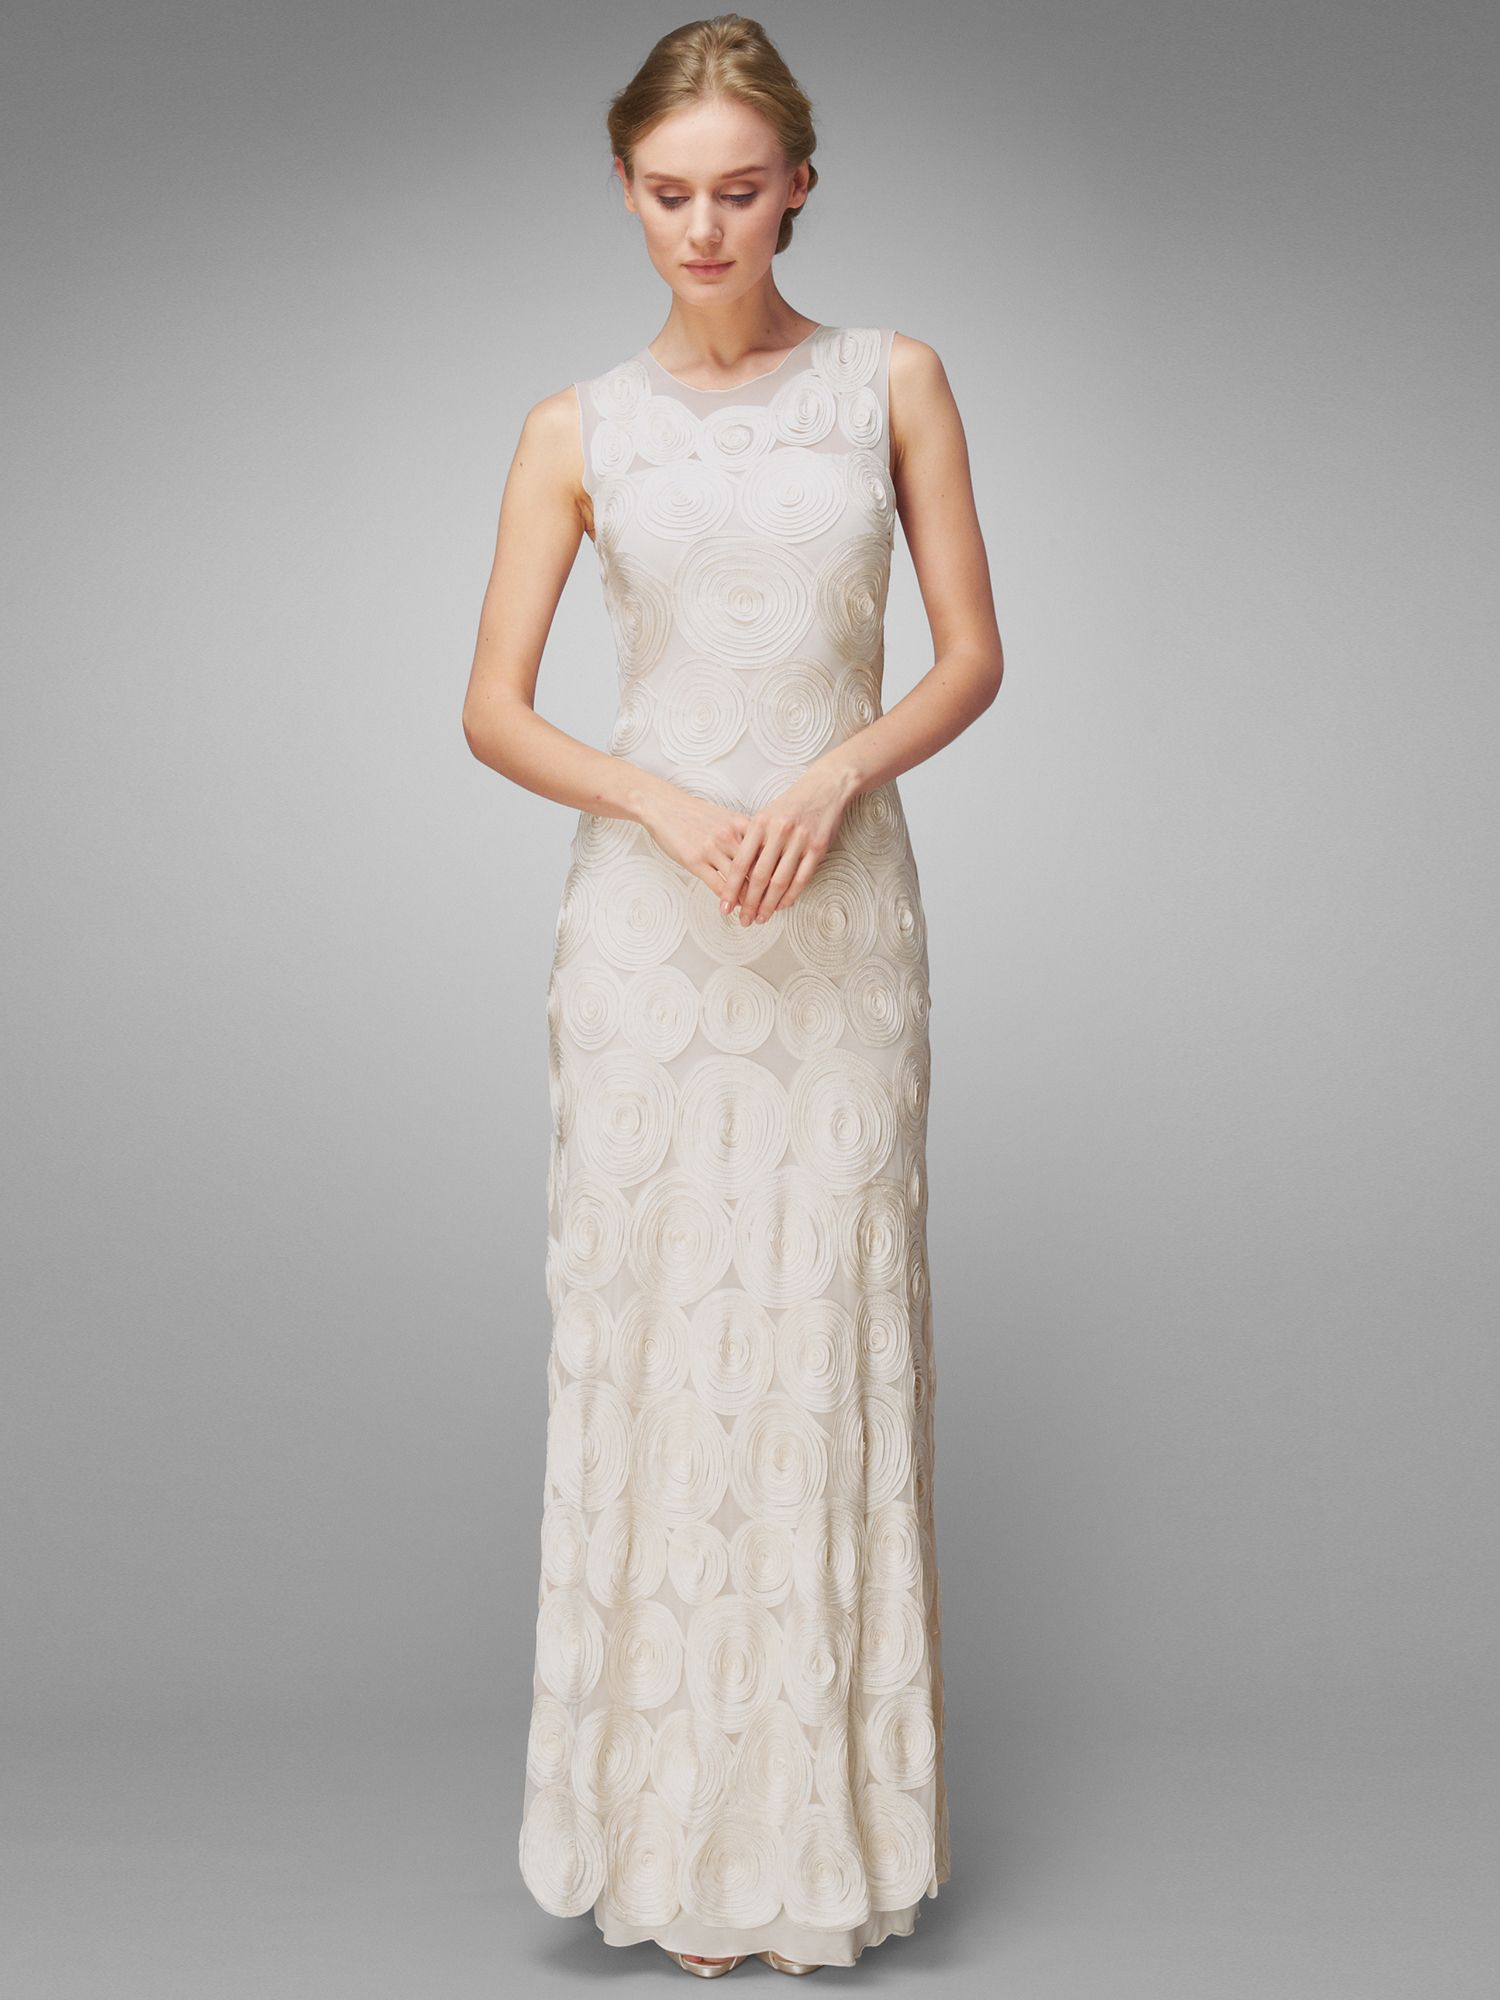 Clemence wedding dress